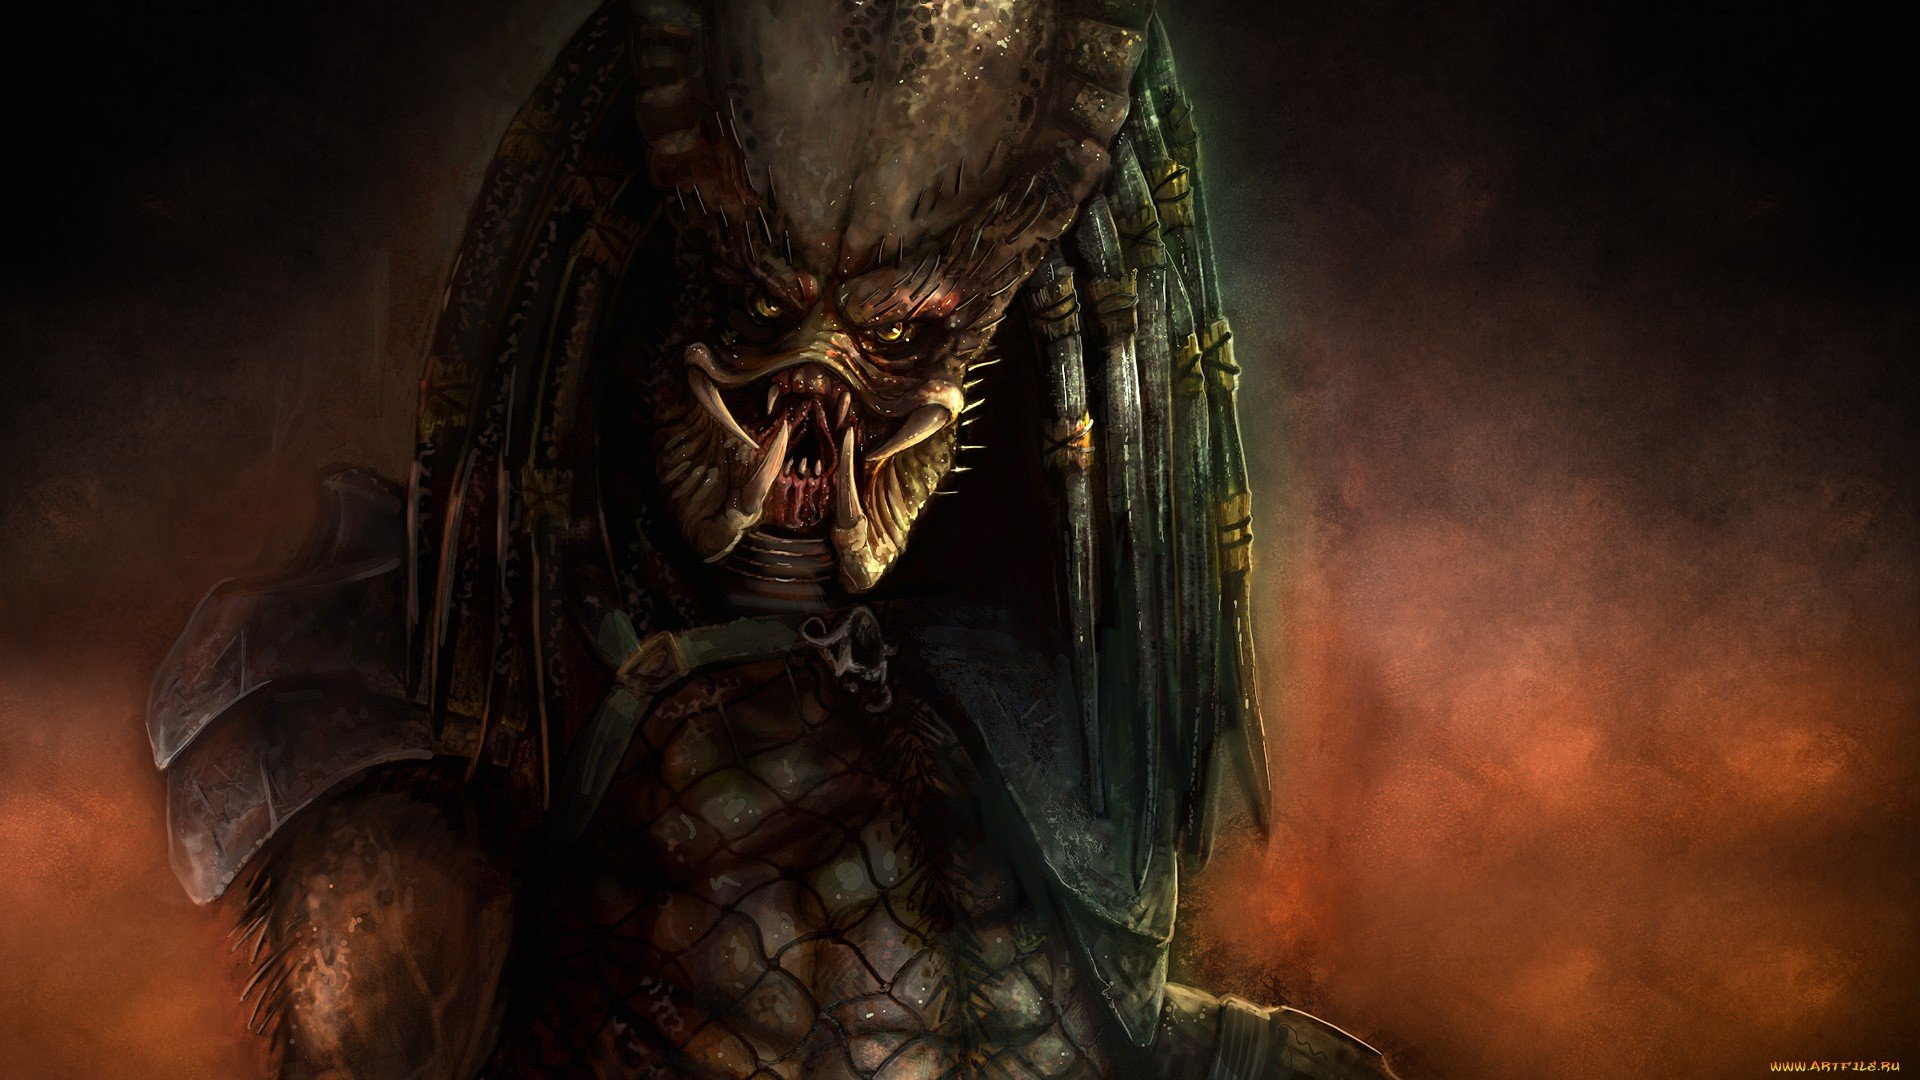 Zedge Full Hd Wallpaper Predator Wallpaper 1920x1080 292846 Wallpaperup